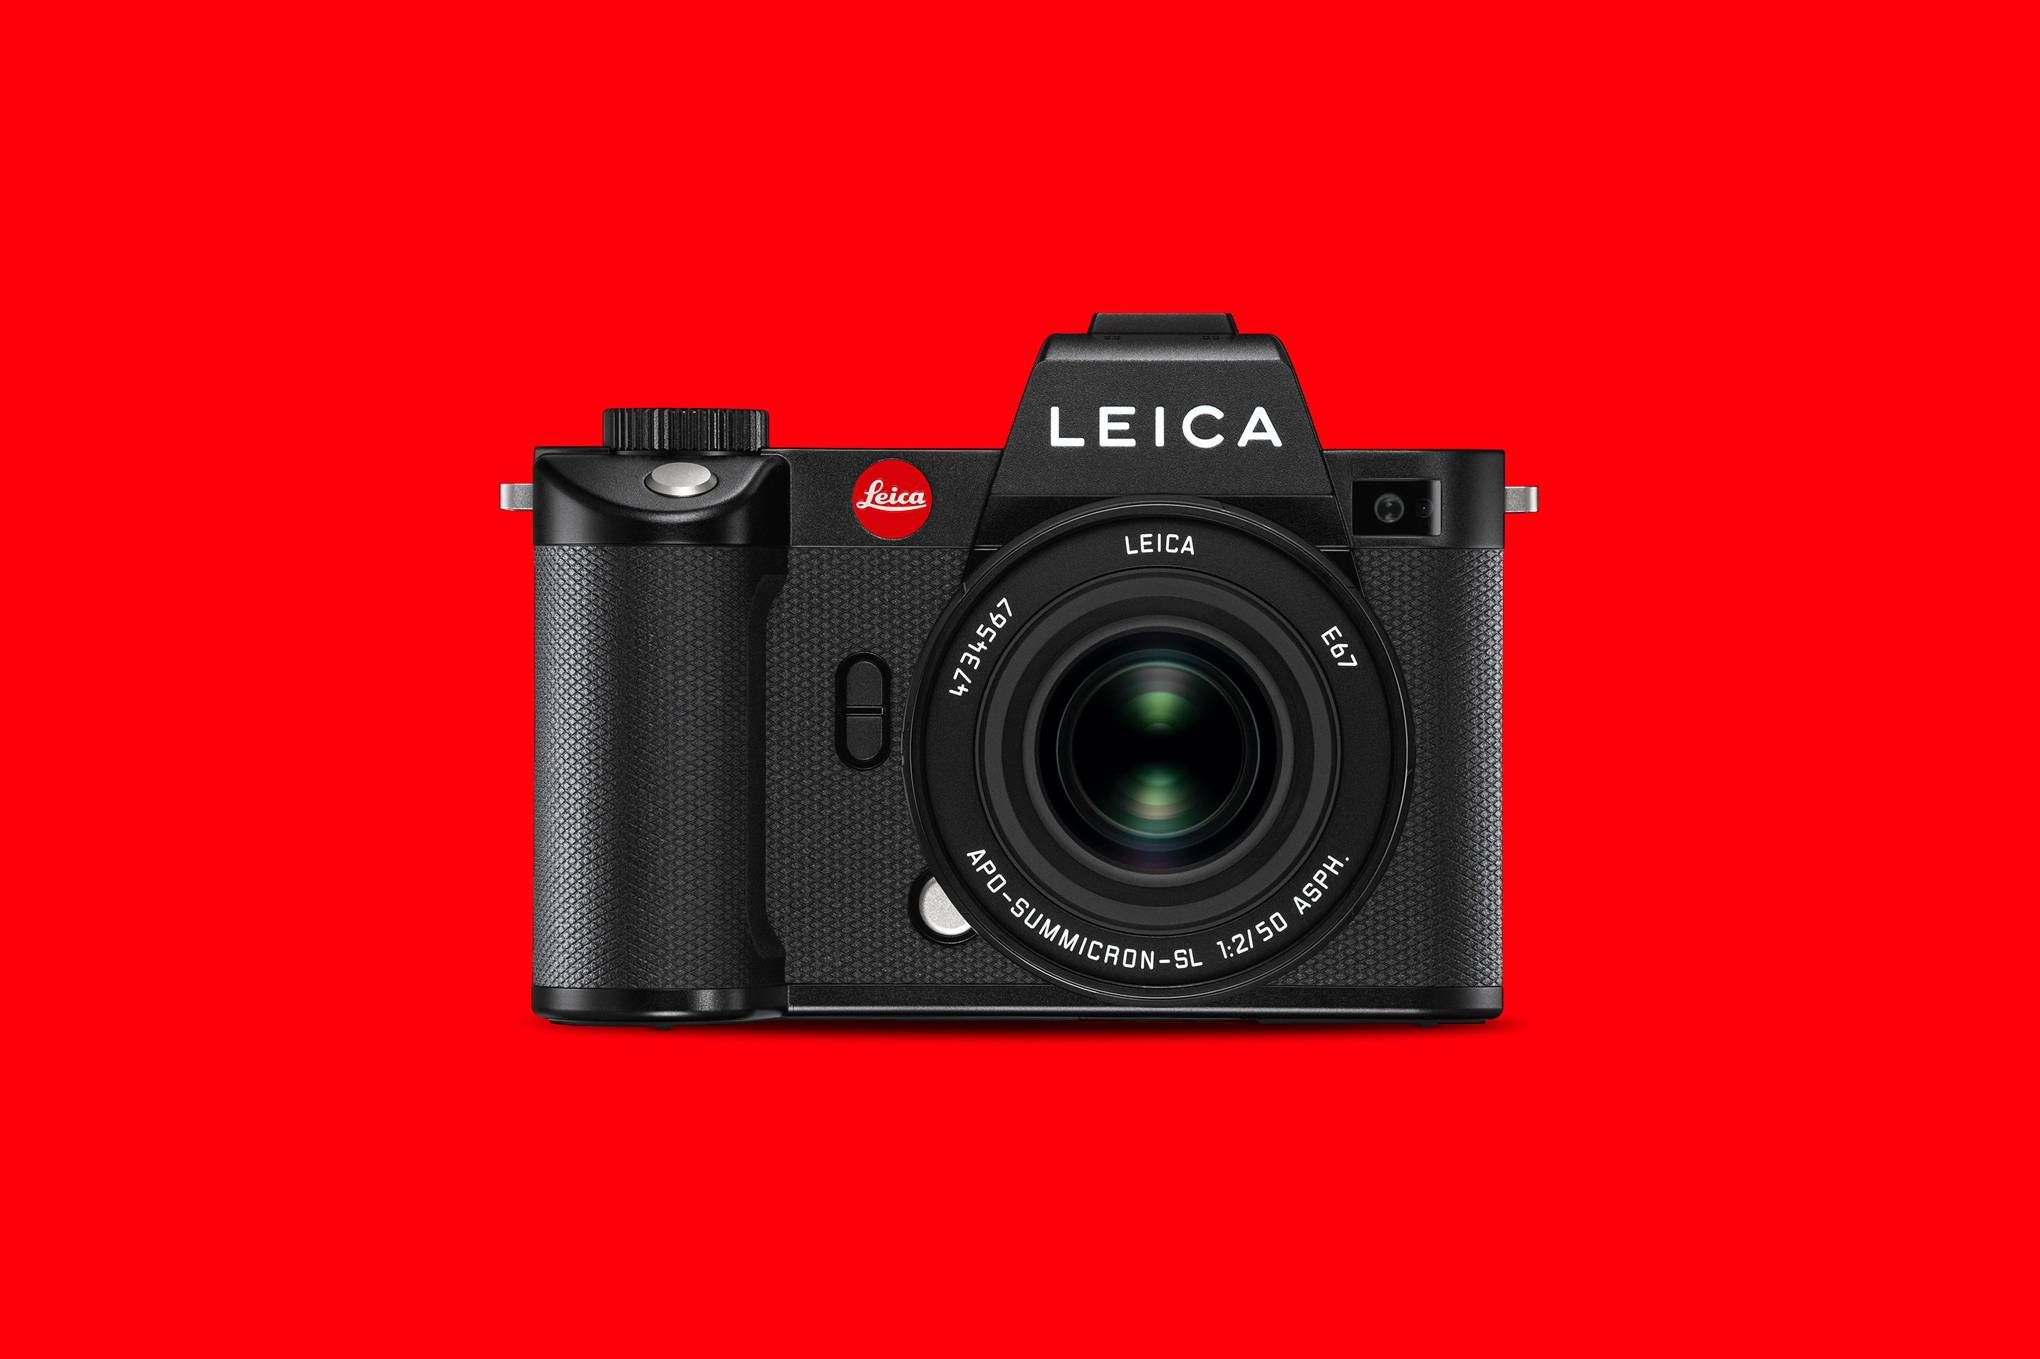 The new Leica SL is a stunning 4K, 47.3 megapixel mirrorless camera